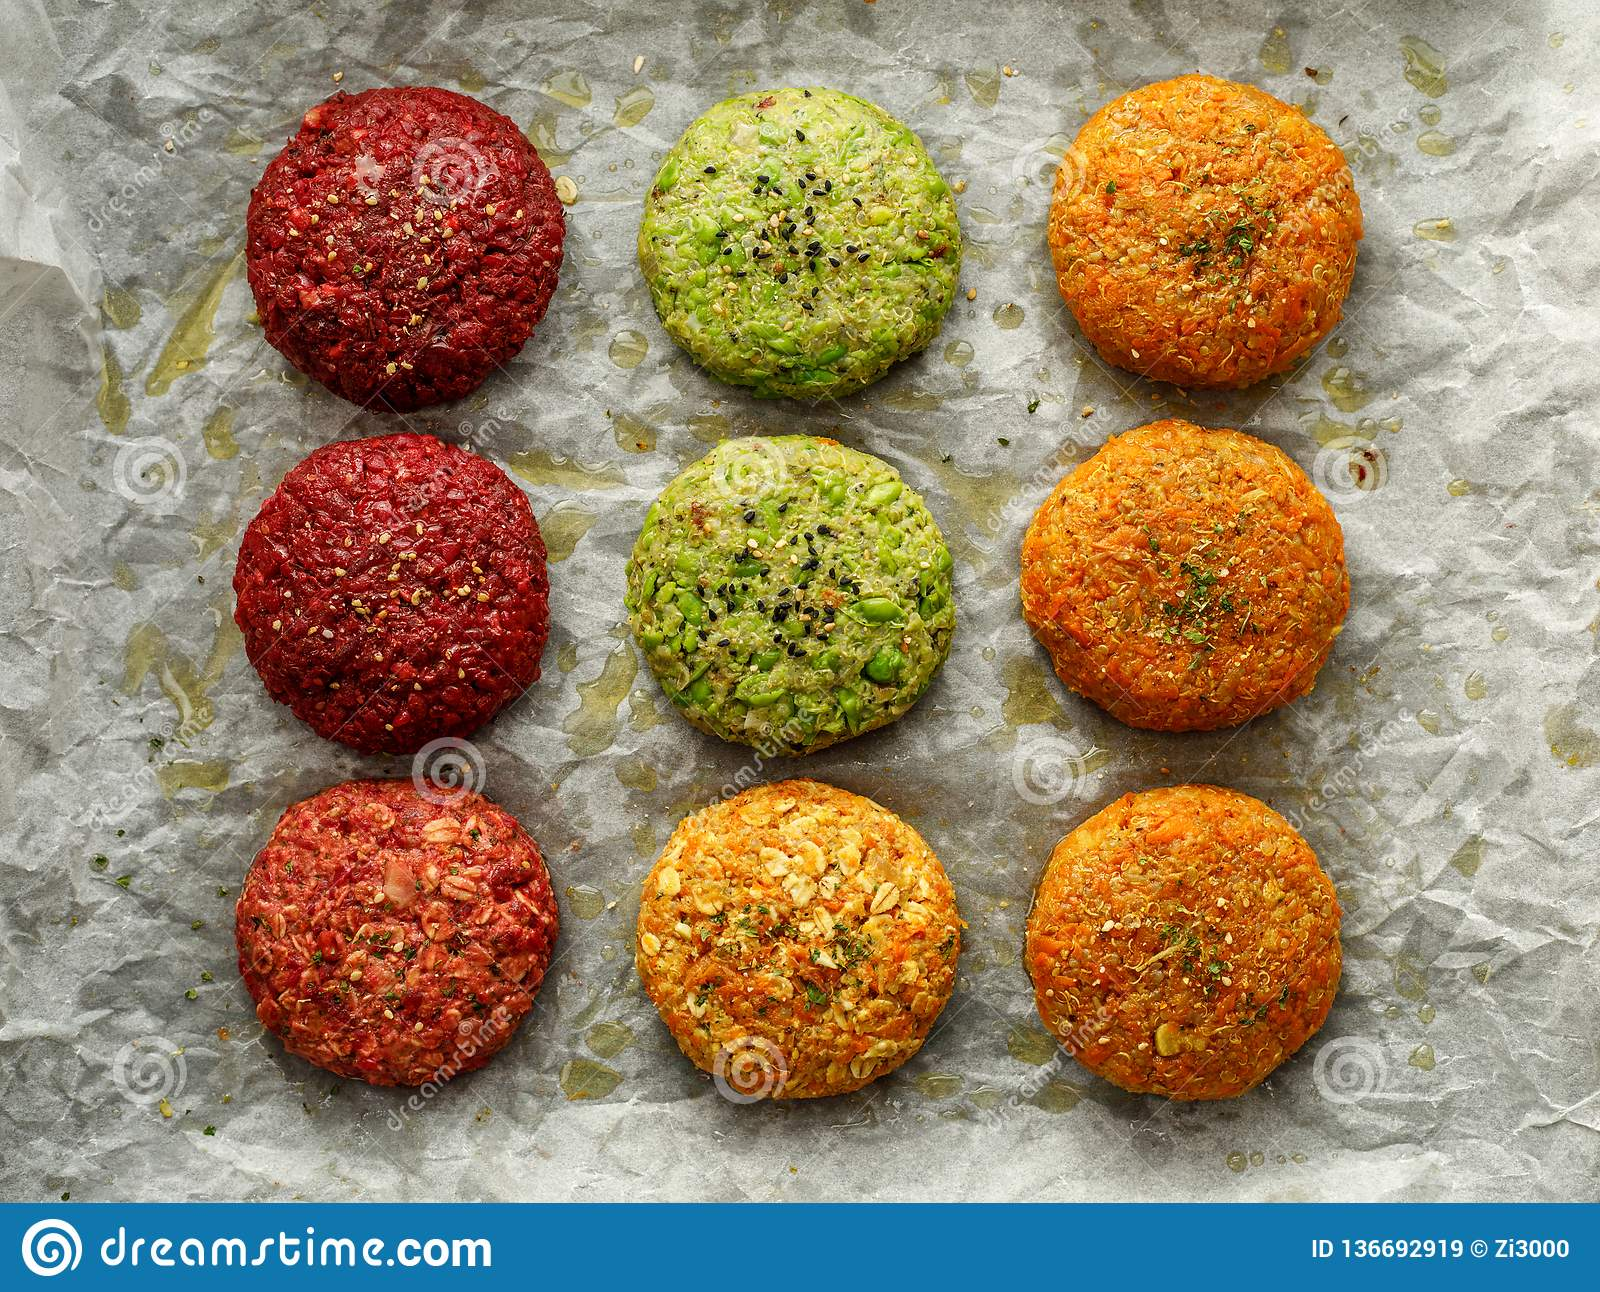 Raw vegan burgers made of beetroot, green peas, carrots, groats and herbs on white parchment prepared for baking, top view.